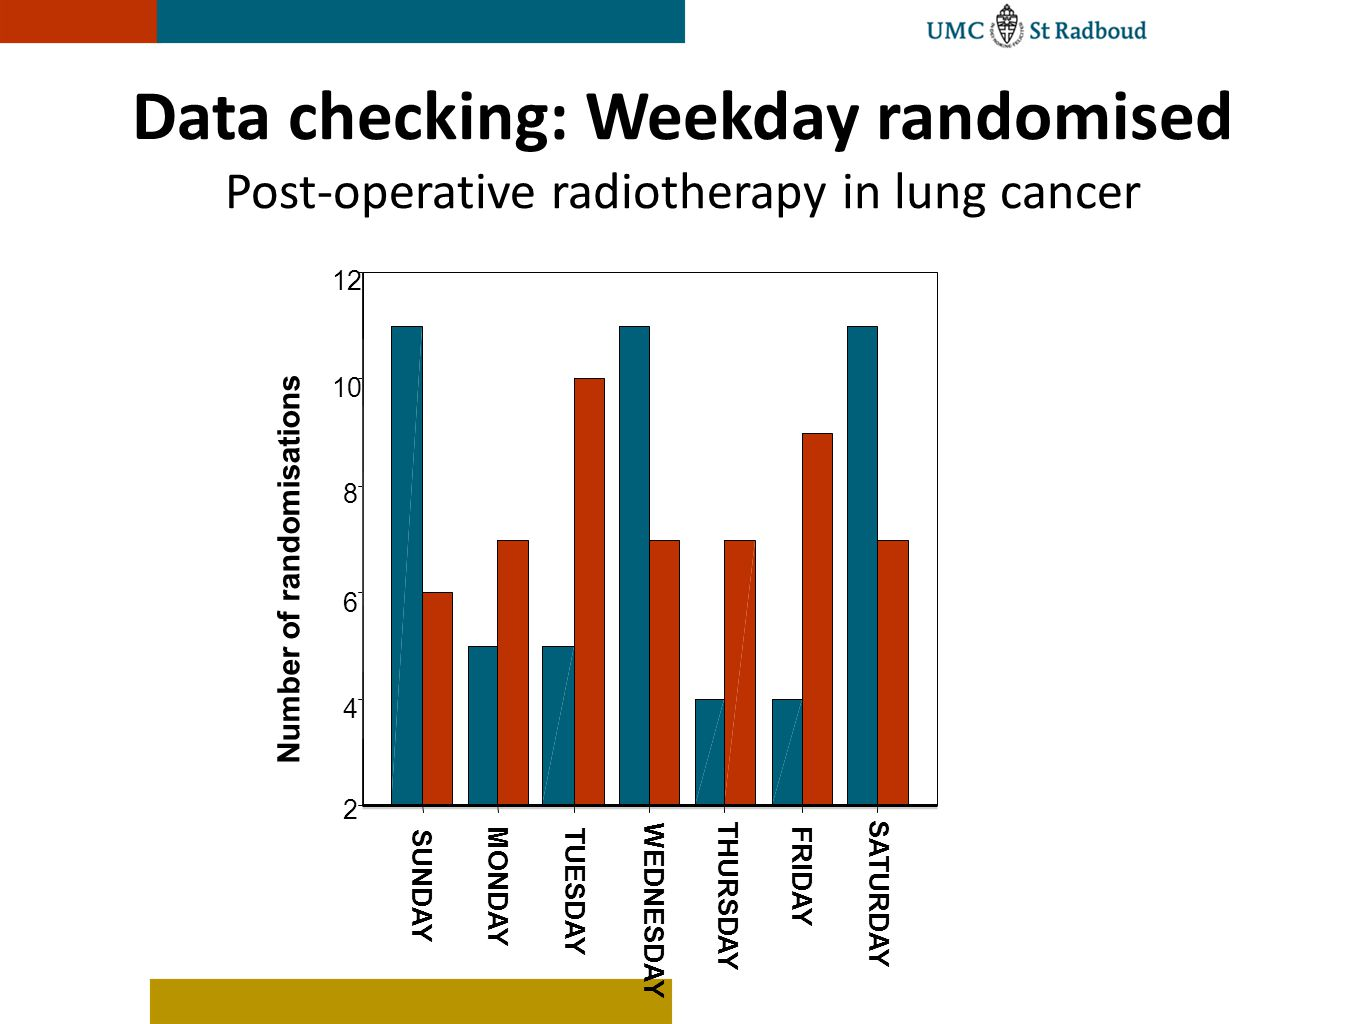 SATURDAY FRIDAY THURSDAY WEDNESDAY TUESDAY MONDAY SUNDAY Number of randomisations 12 10 8 6 4 2 Data checking: Weekday randomised Post-operative radio